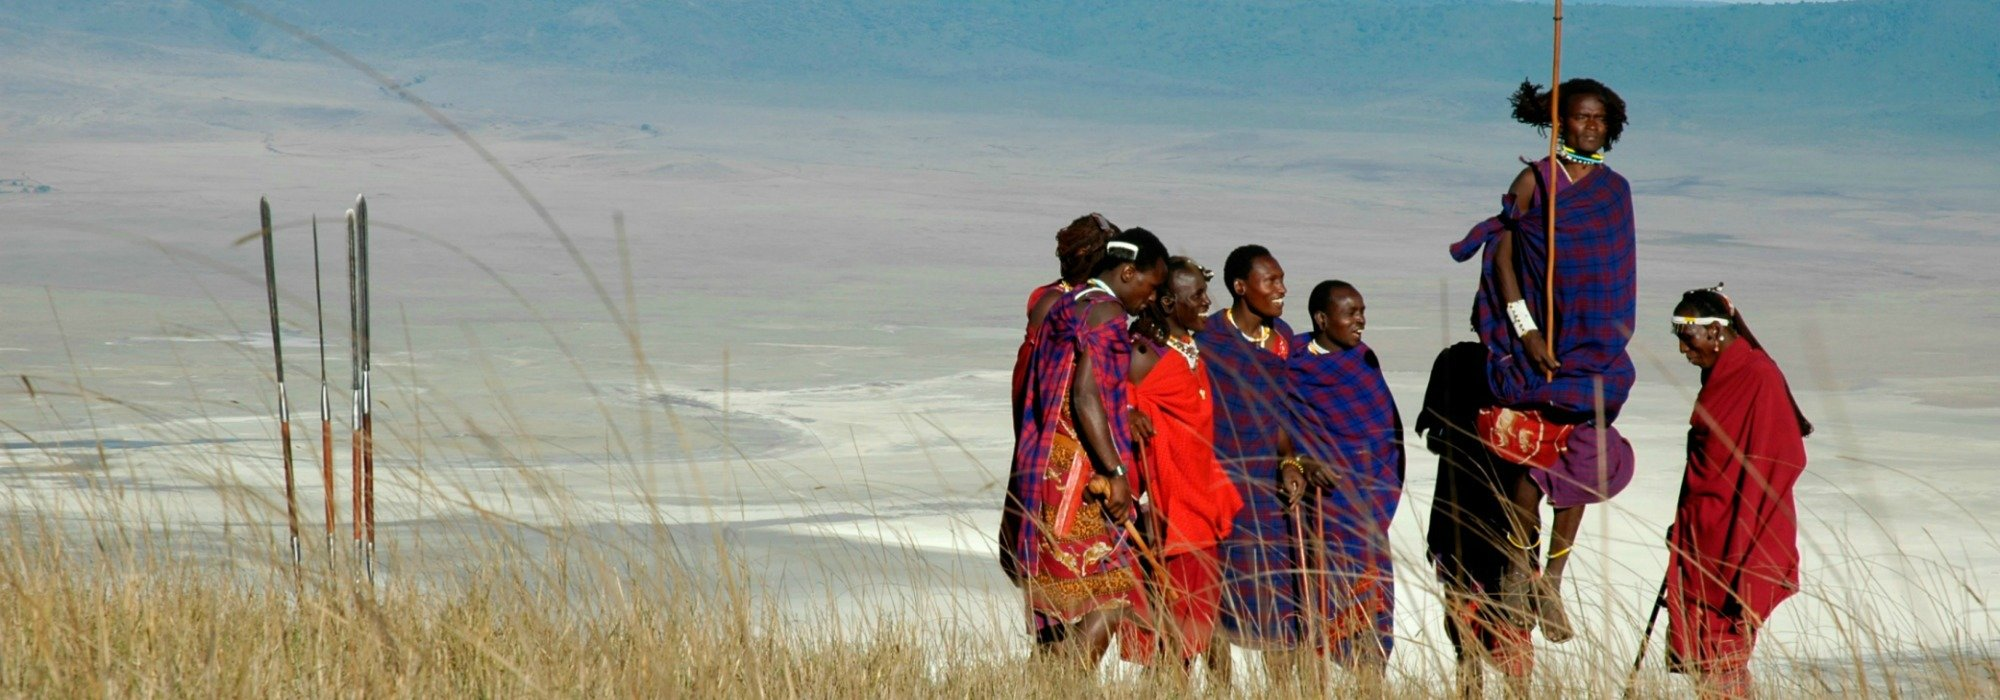 Maasai at Ngorongoro Crater